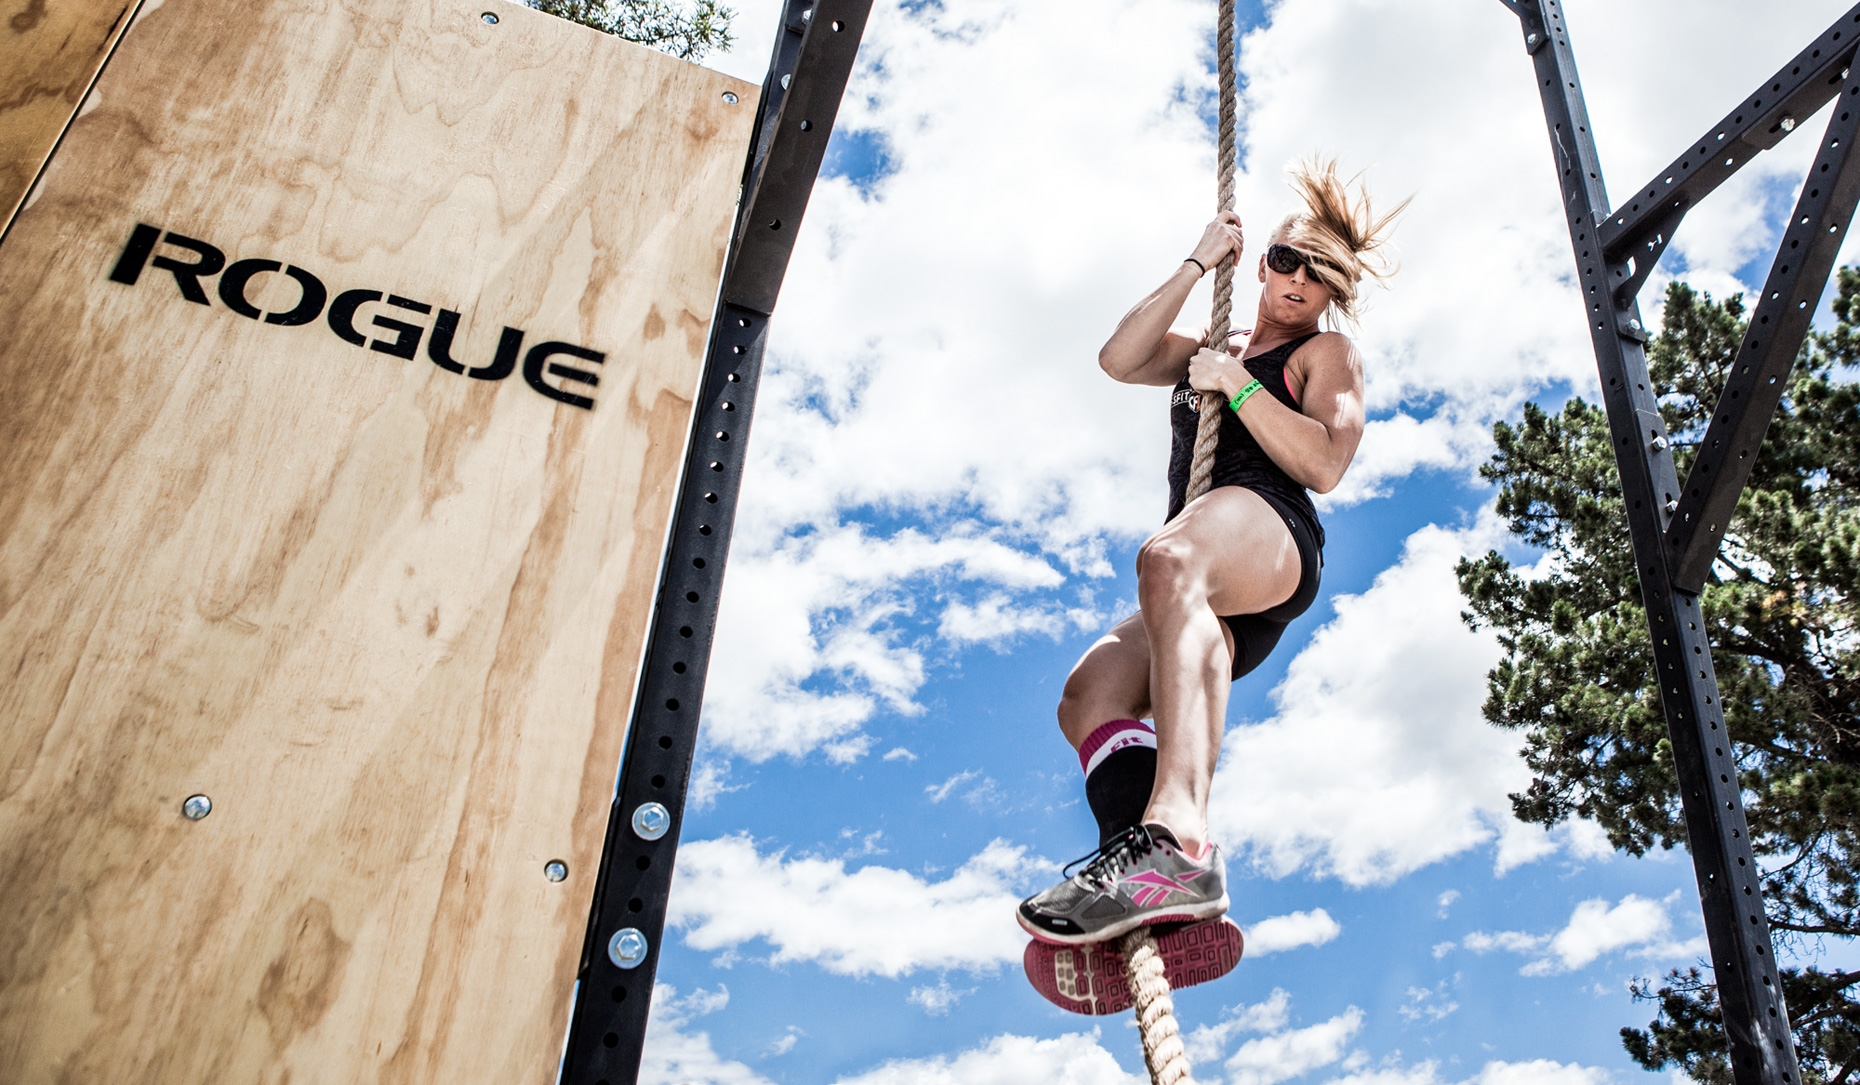 Los Angeles Sports Photography, Michael Brian, athlete, female, Crossfit, rope climb, Rogue